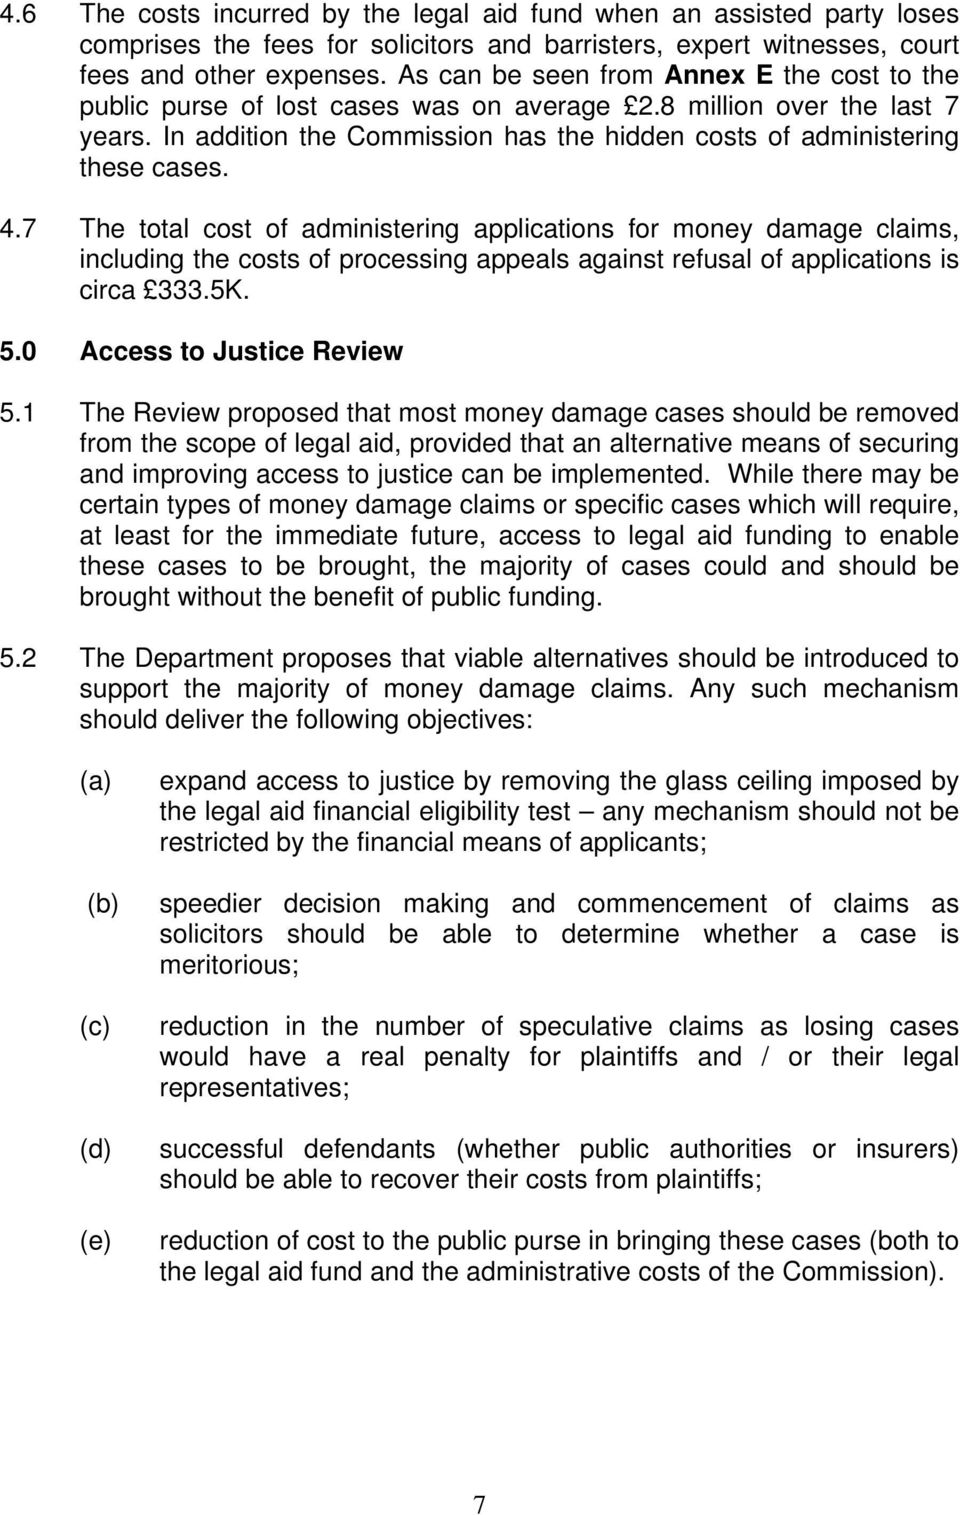 4.7 The total cost of administering applications for money damage claims, including the costs of processing appeals against refusal of applications is circa 333.5K. 5.0 Access to Justice Review 5.